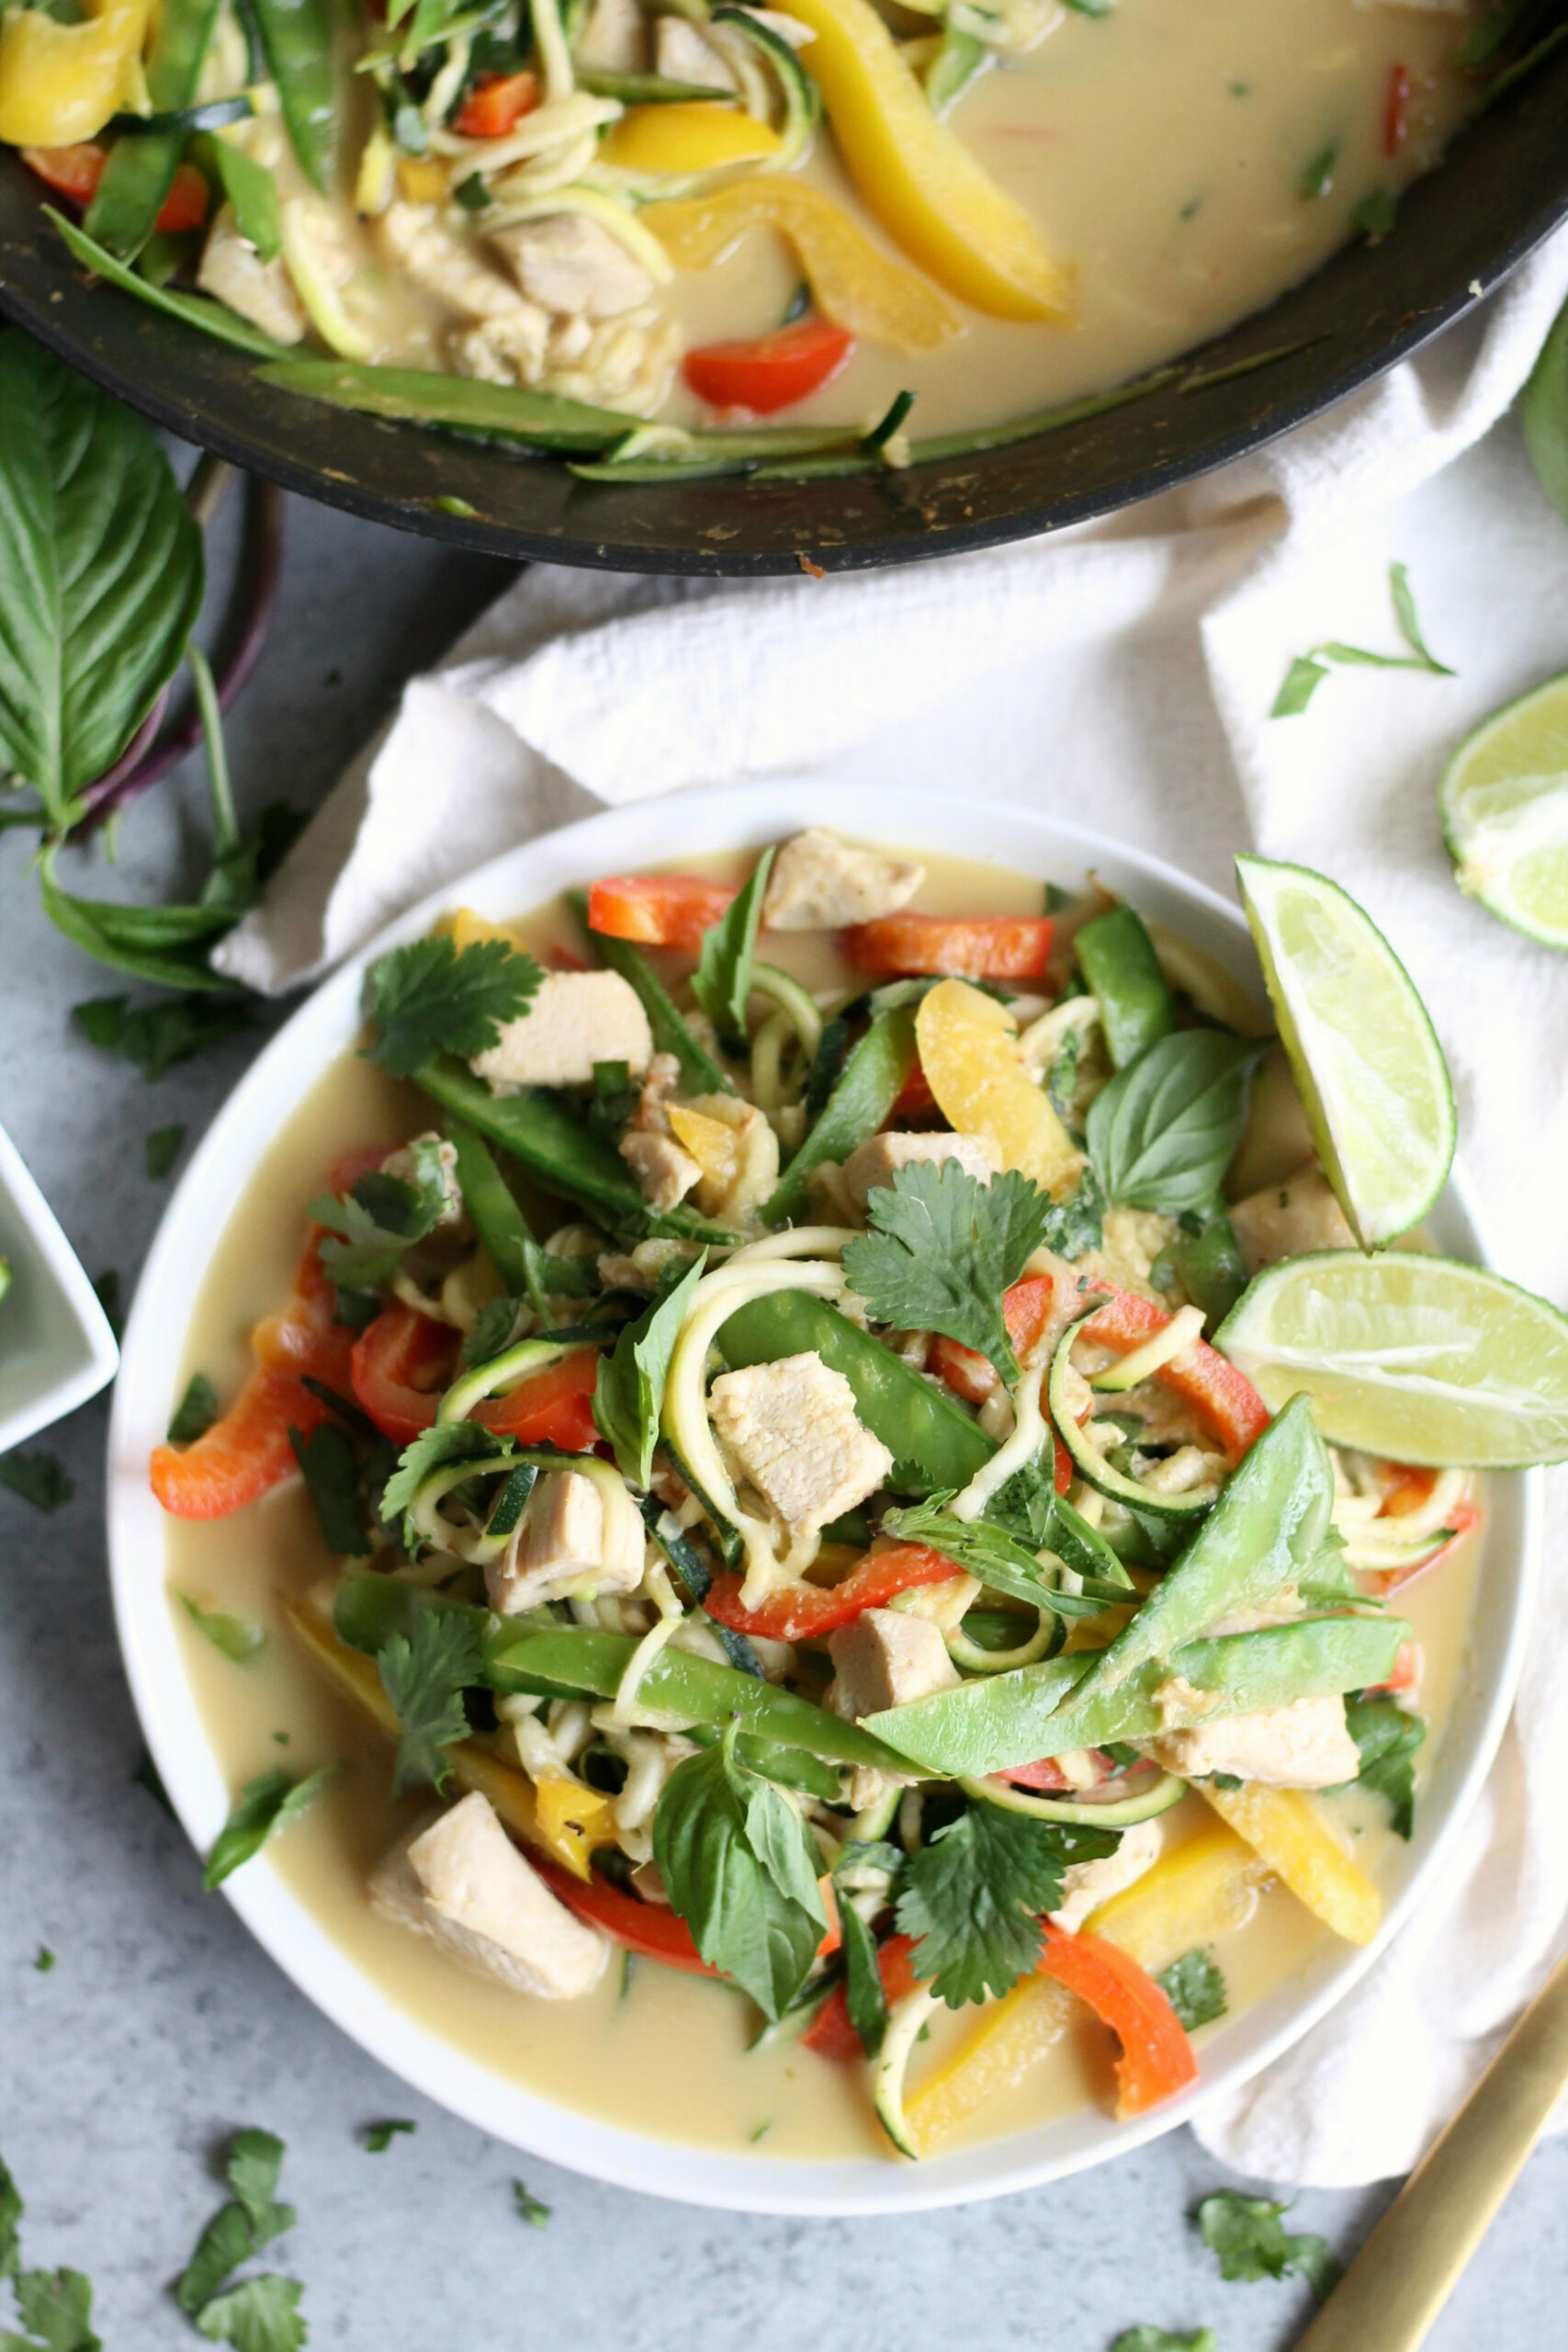 Thai Green Curry Chicken Vegetable Zucchini Noodles - recipe vegetarian thai green curry